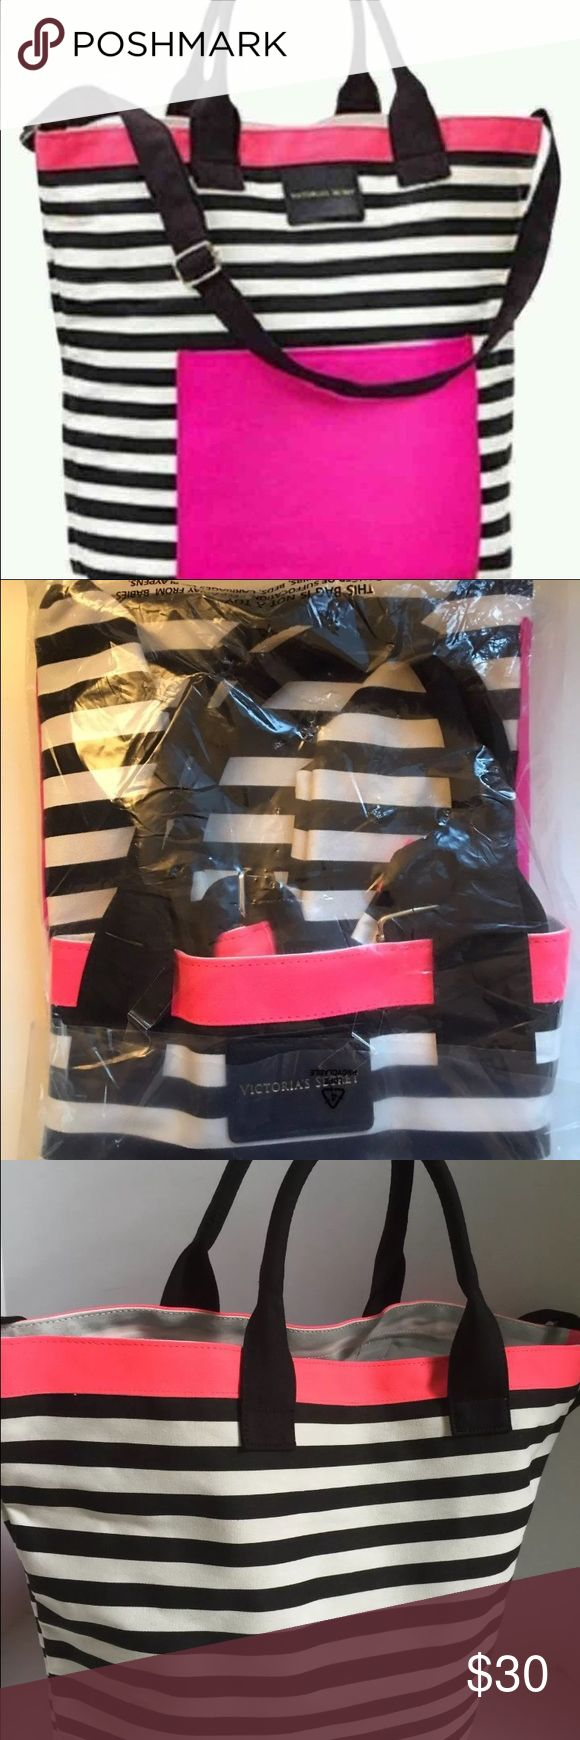 NEW VICTORIA SECET TOTE BAG Brand new with tags VS TOTE BAG PINK Victoria's Secret Bags Totes